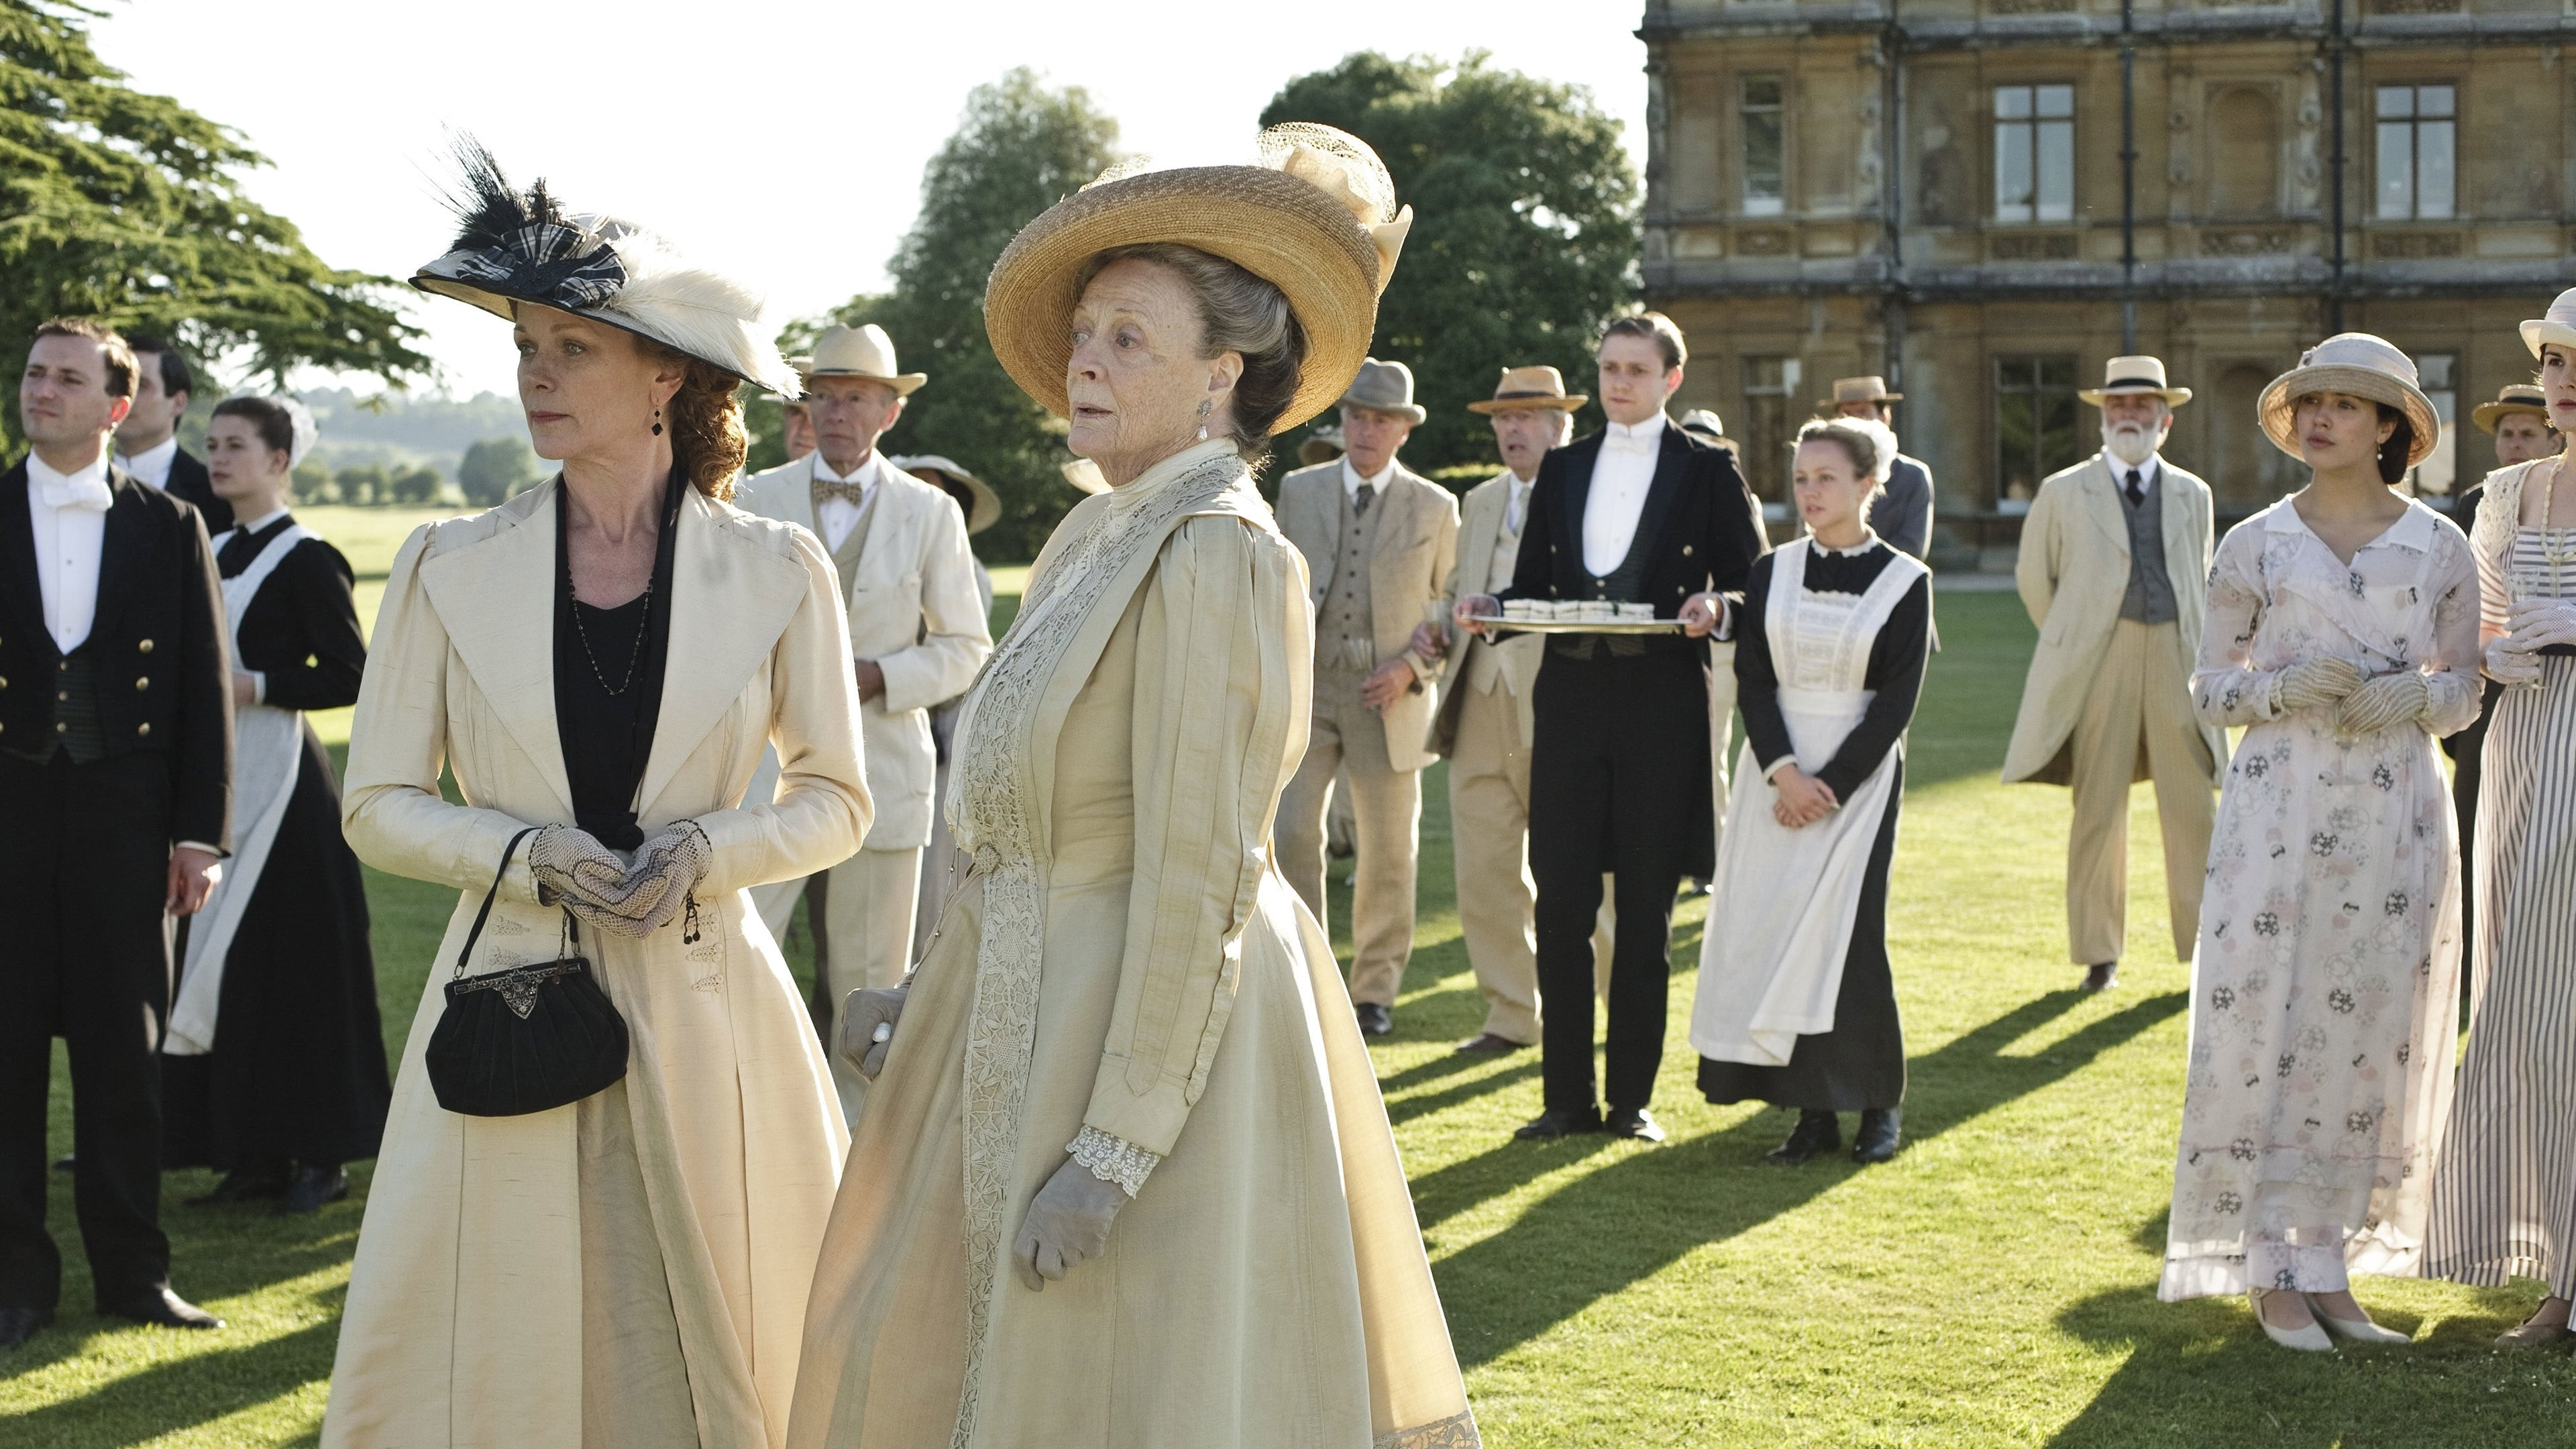 downton abbey Downton abbey is a historical period drama television series created by julian fellowes and co-produced by carnival films and masterpiece it first aired on itv in the united kingdom on 26 september 2010, and on pbs in the united states on 9 january 2011 as part of the masterpiece classic anthology.